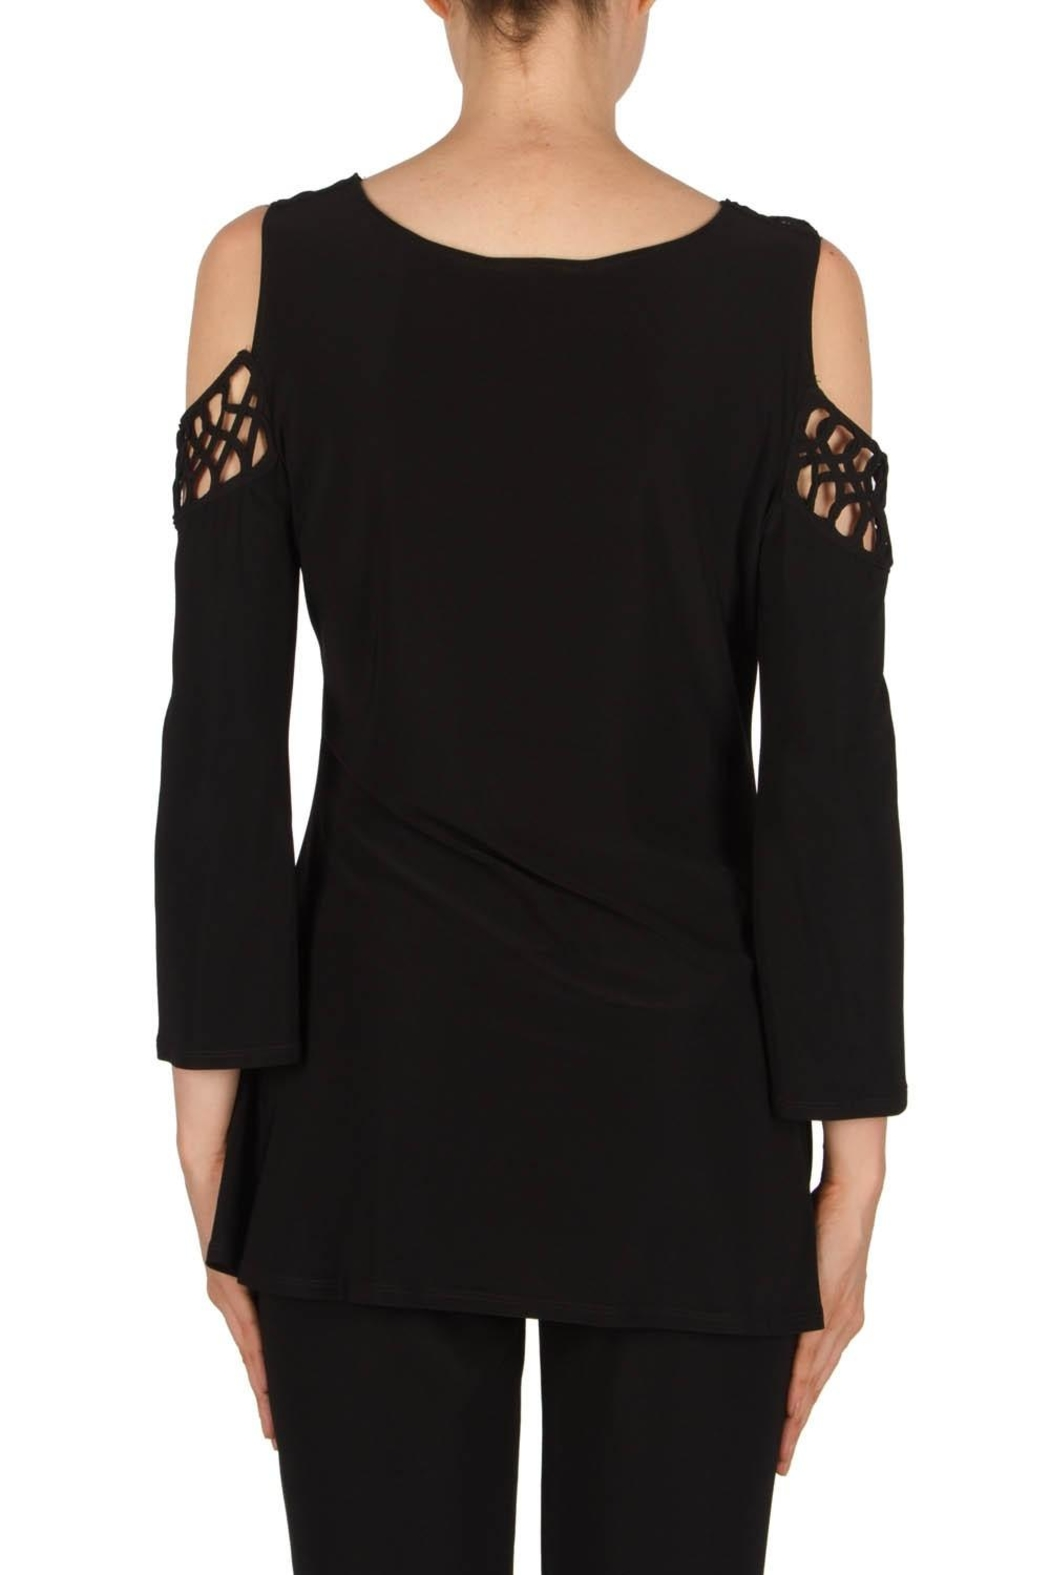 Joseph Ribkoff Cold Shoulder Top - Side Cropped Image